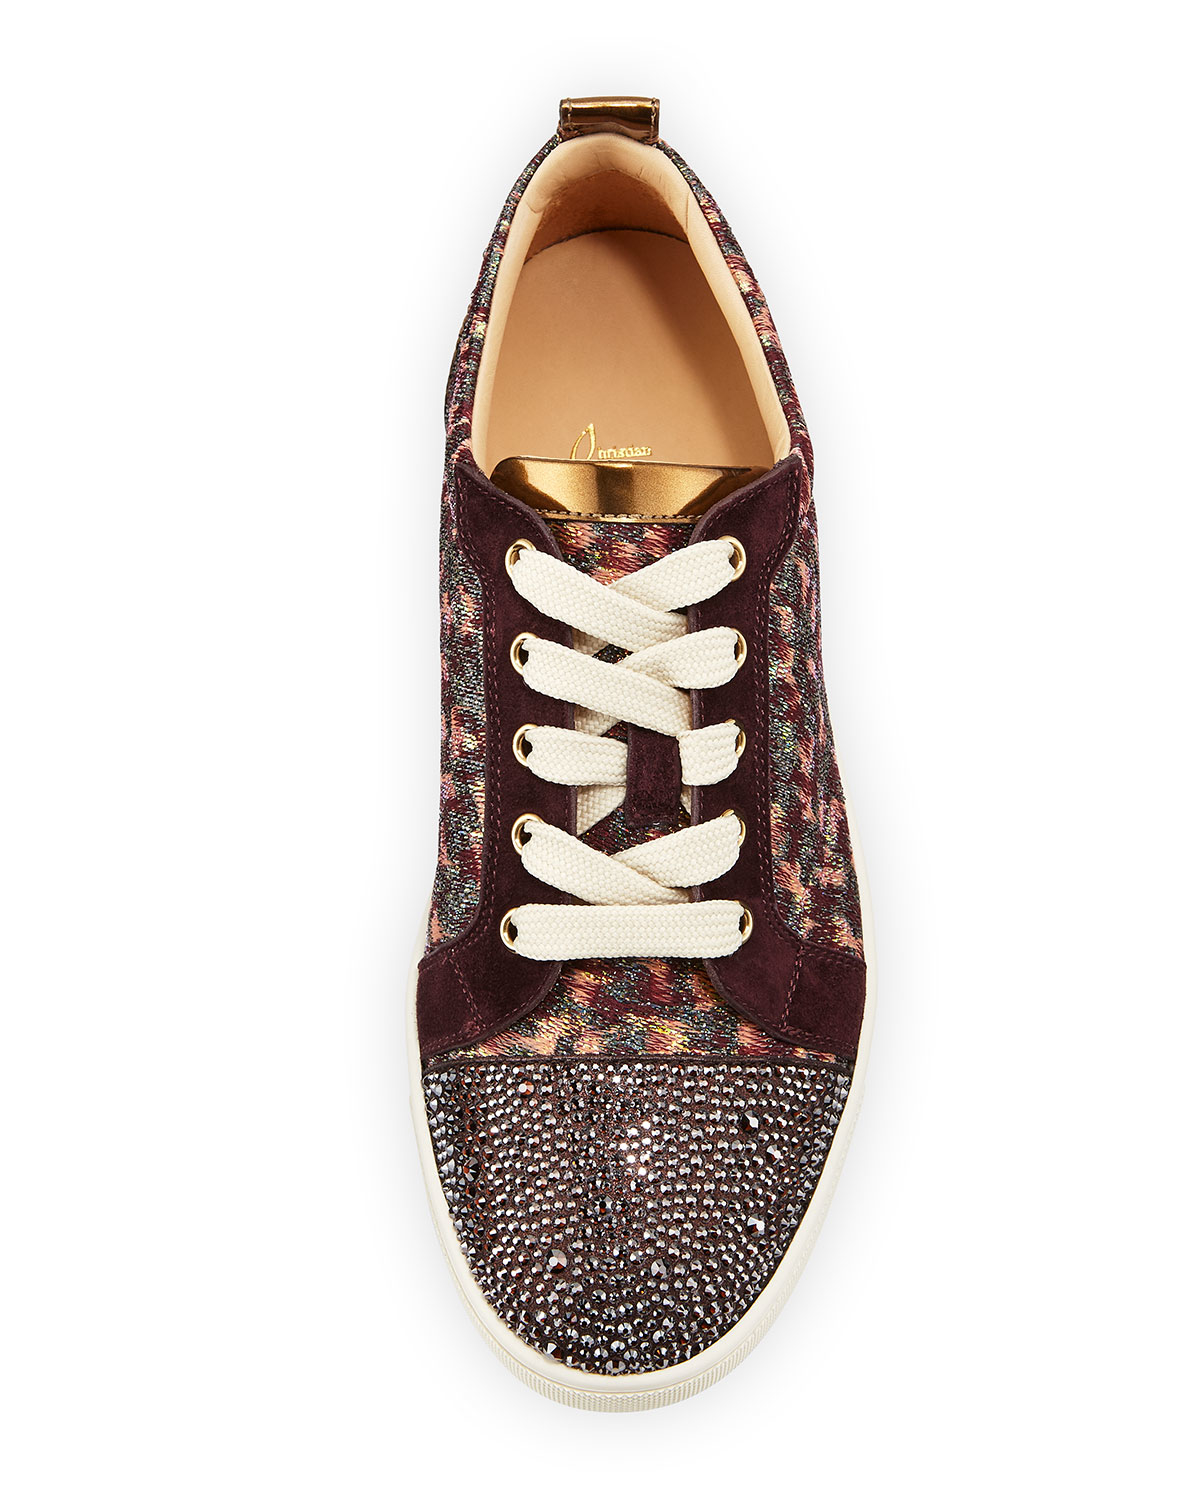 Christian Louboutin Gondola Strass Low-Top Sneakers latest collections cheap price sast online purchase online srFxk